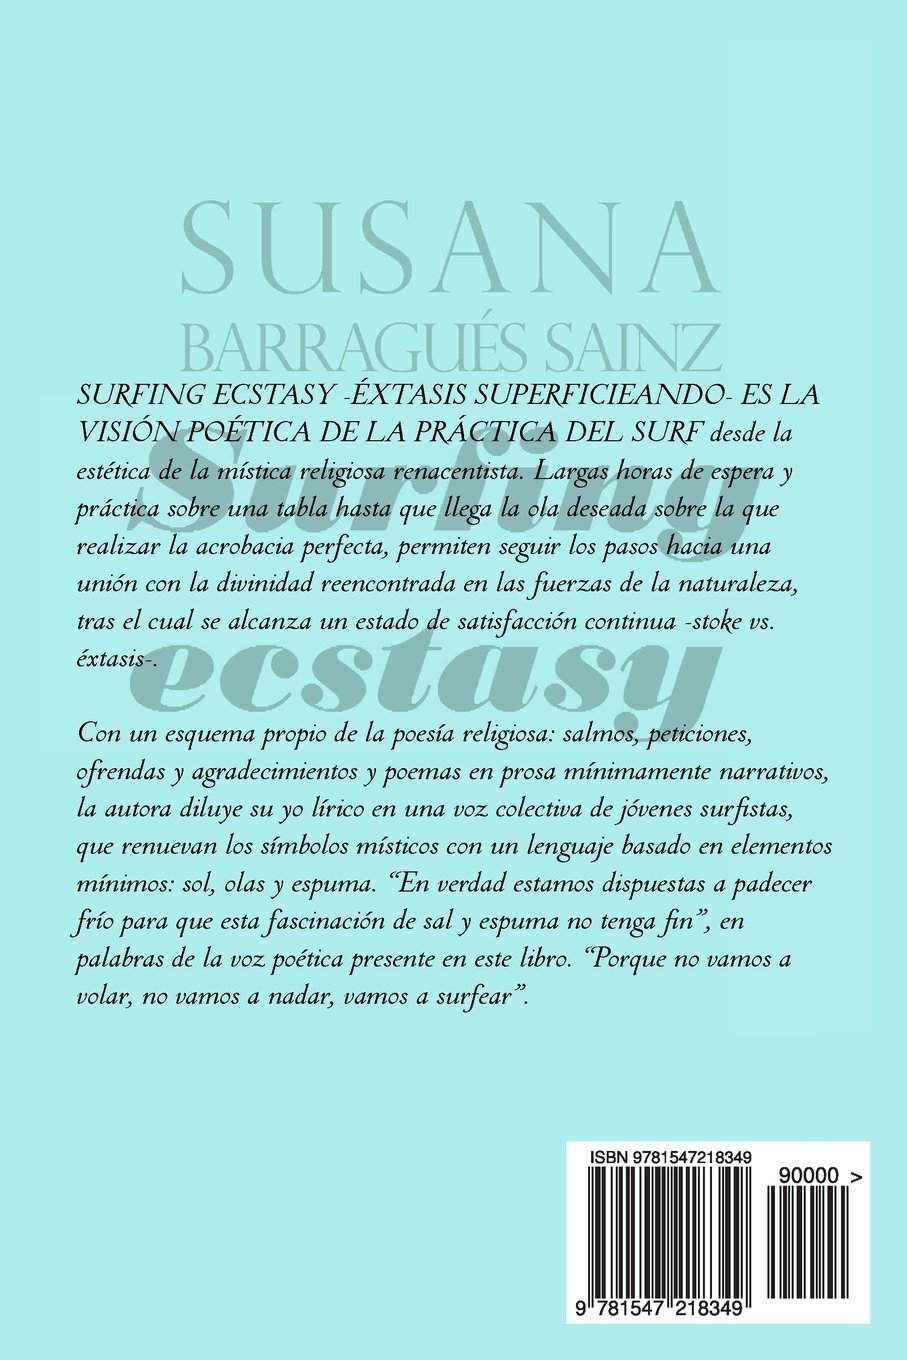 Surfing Ecstasy: -Extasis superficieando- (Spanish Edition): Susana Barragues Sainz: 9781547218349: Amazon.com: Books